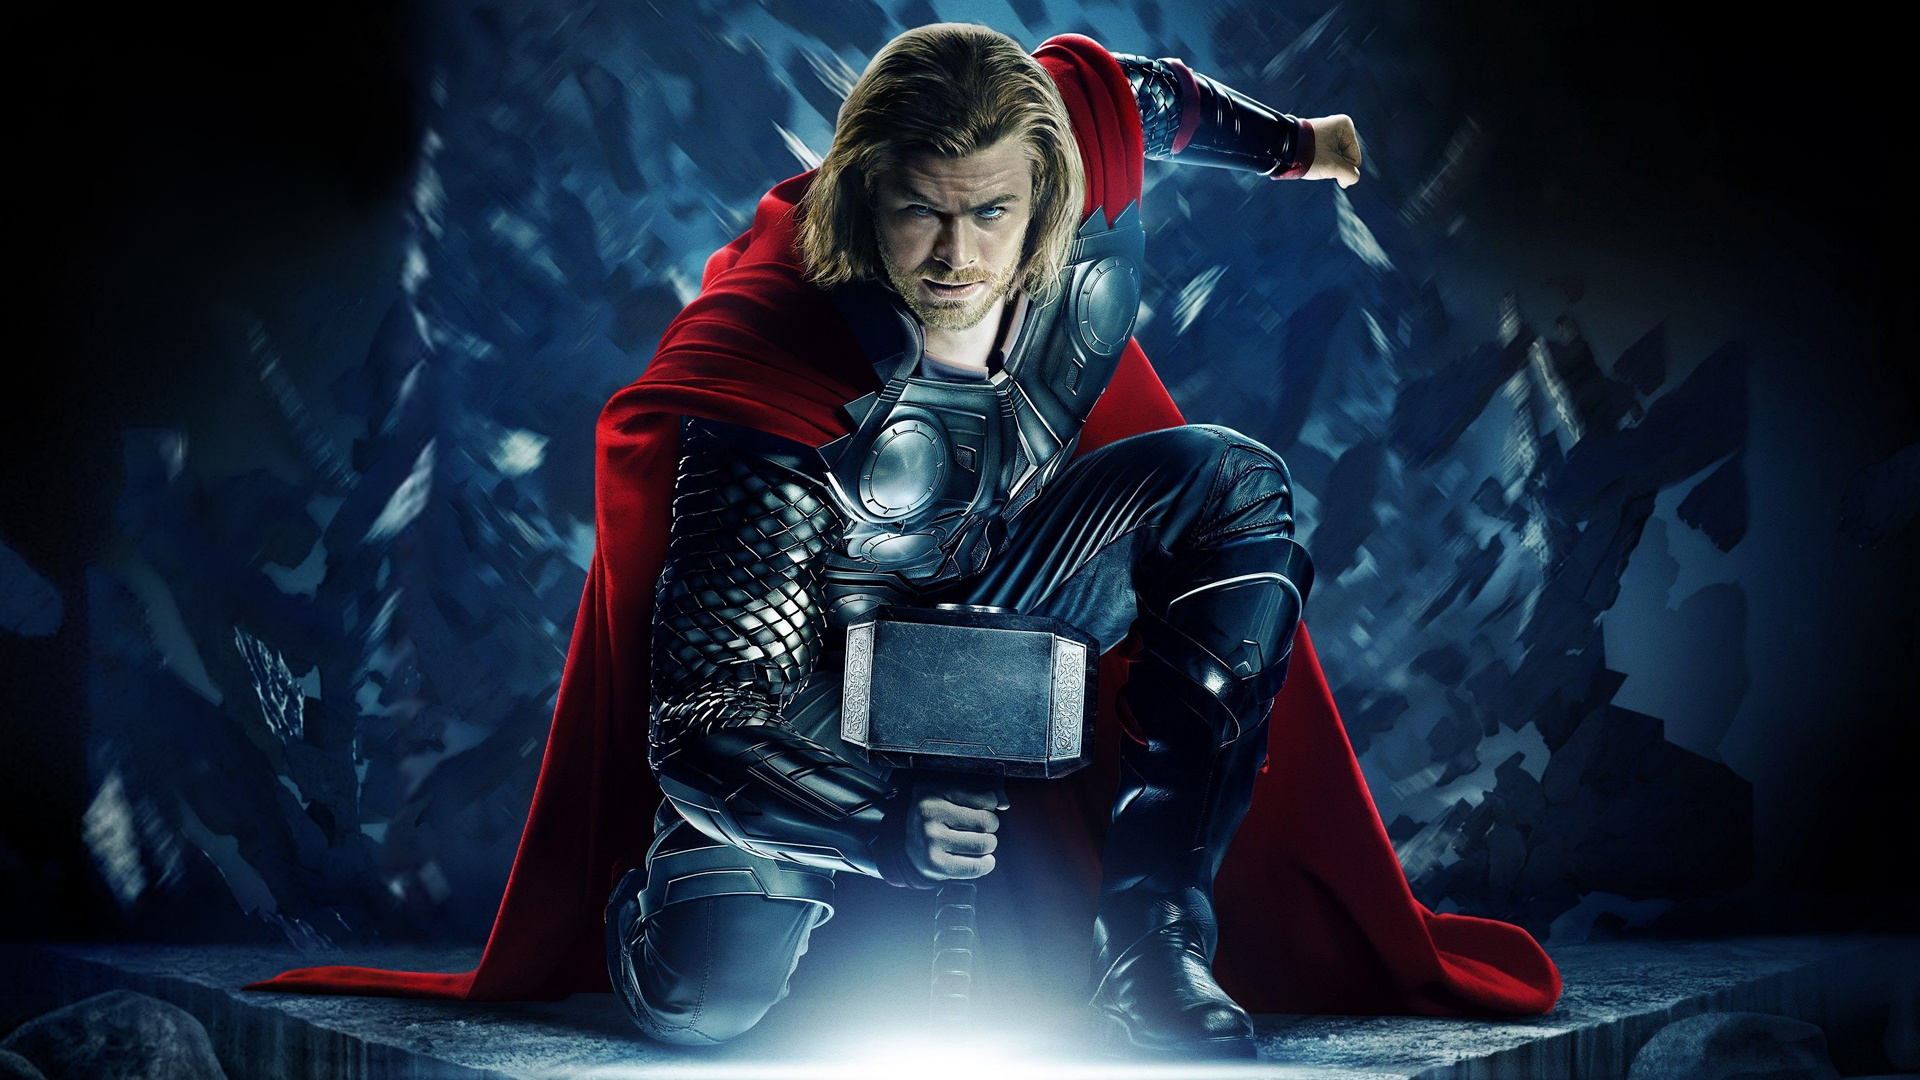 thor full hd wallpaper and background image | 1920x1080 | id:674048